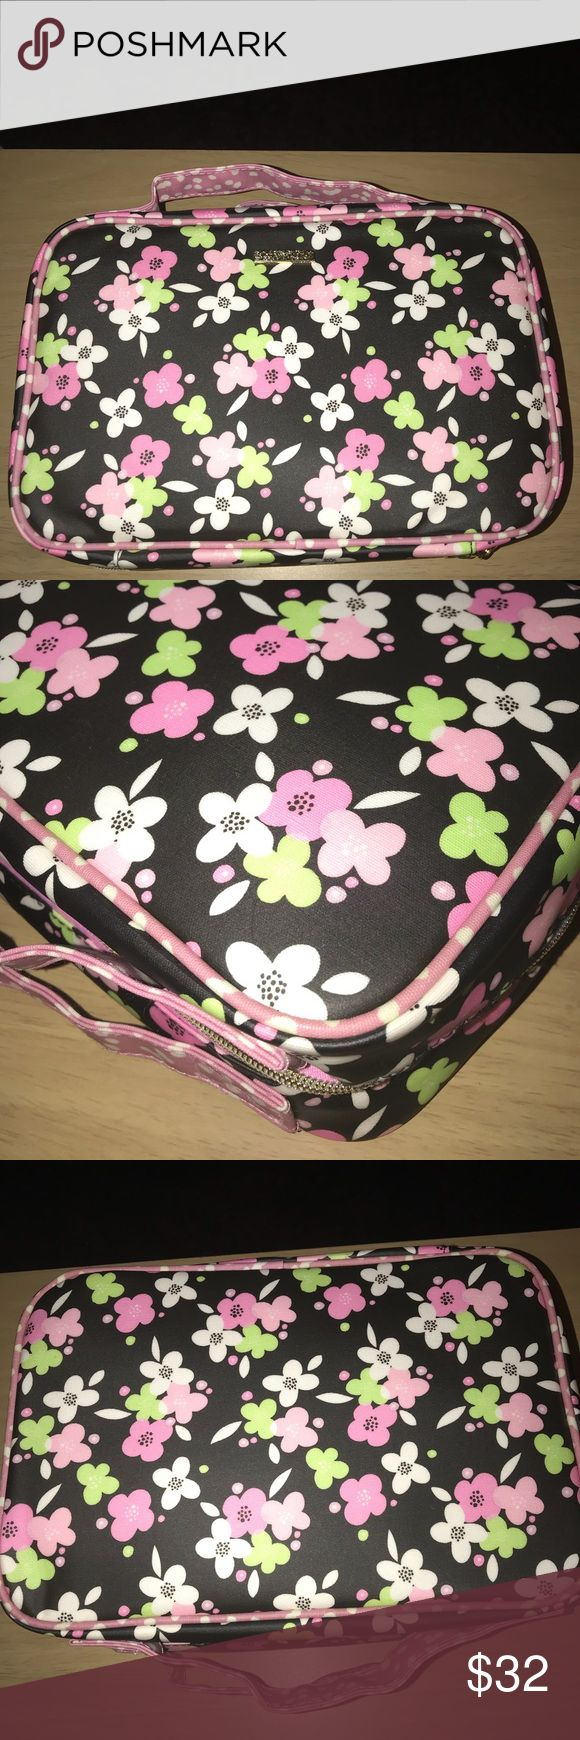 "New floral cosmetic bag set of three New without tags floral cosmetic bag set of three.  By Sophia Joy.  Pretty in pink floral cosmetics case with two top handles and zipper closure all around.  Gold hardware.  Two small cosmetic cases inside still attached to bag with plastic tag.  Large case is 11"" wide and stands 8"".  4"" deep.  Inside cases are about 9"" wide and stands 4"".  2"" deep.  One is a clear pouch h the other is the same pink floral design both with top zipper.  No flaws on these…"